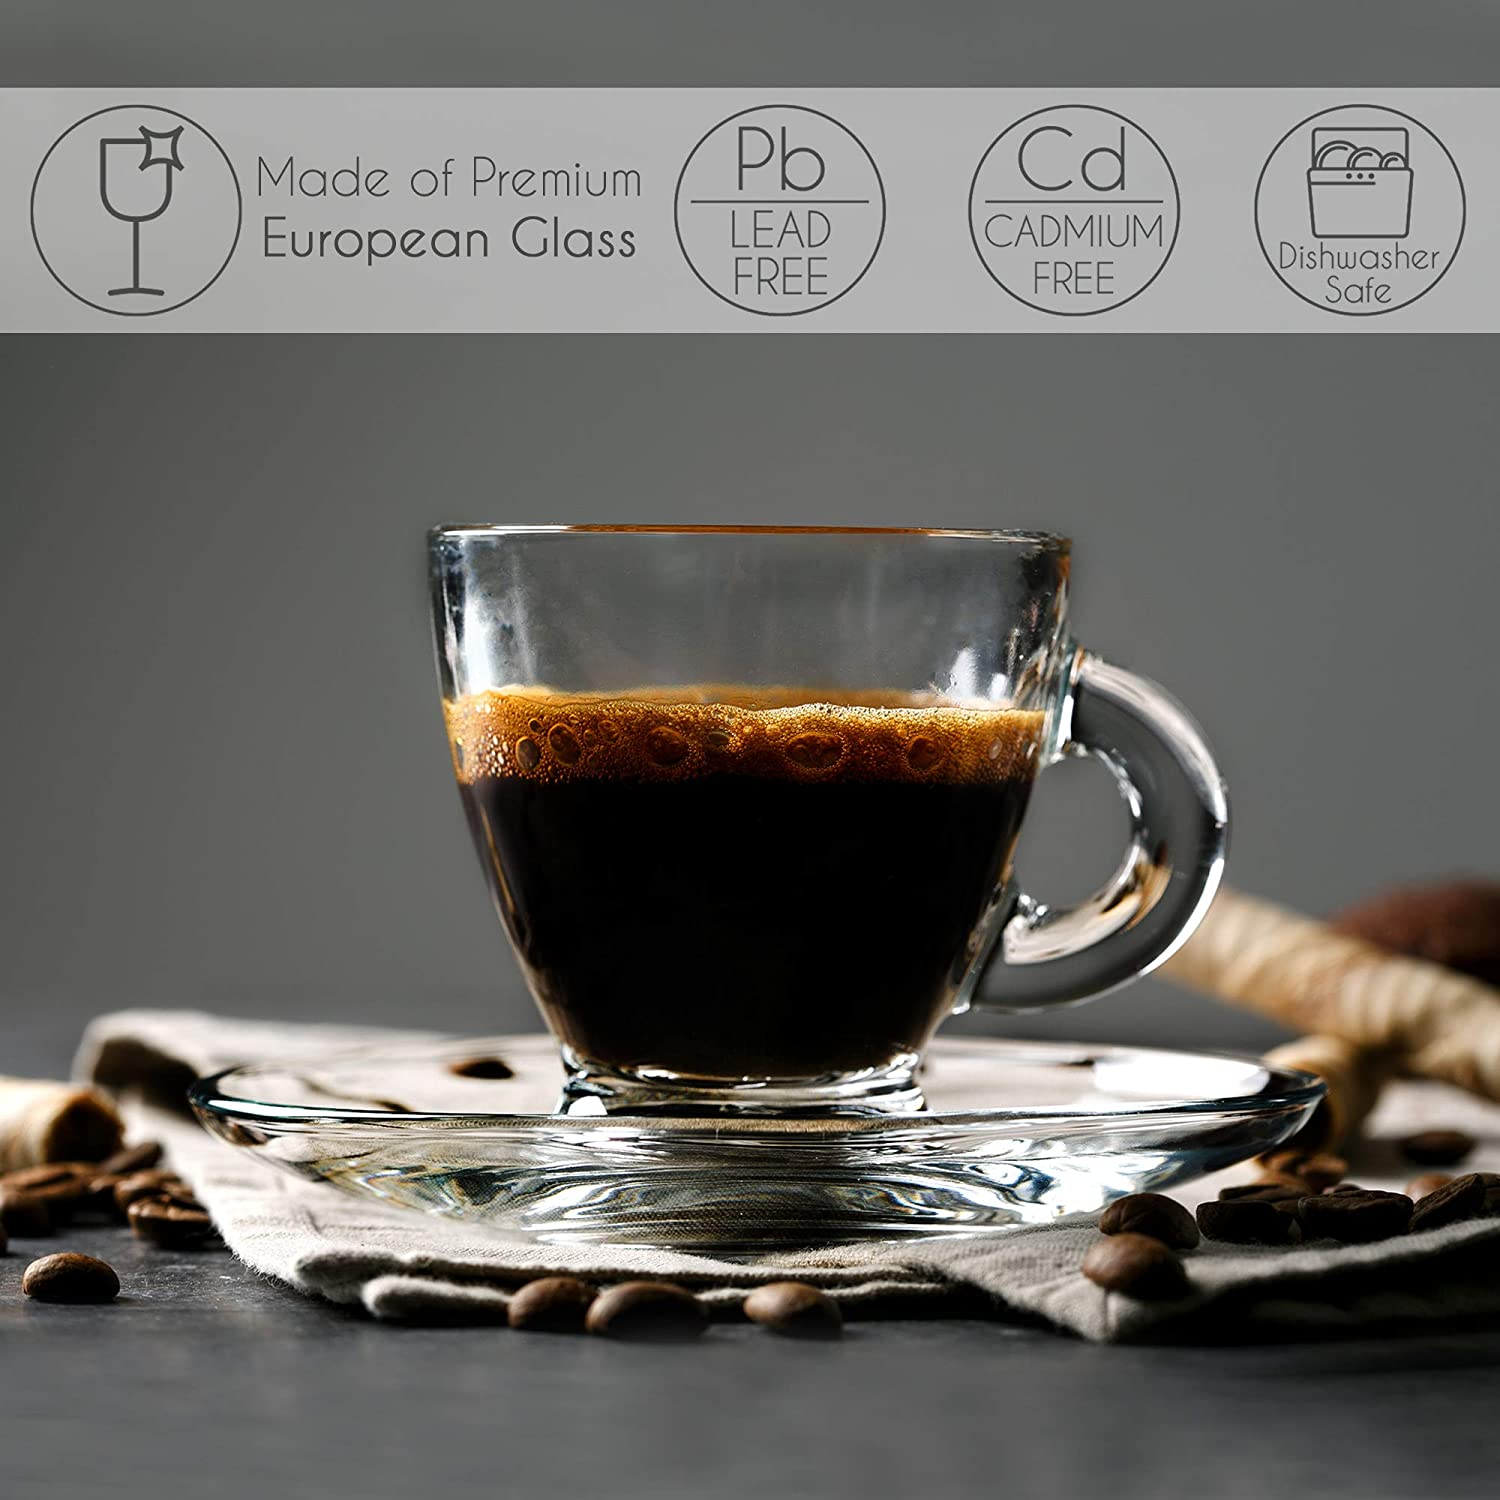 Espresso Cups with Saucers, Demitasse Clear Glass Drinkware, Set of 6 Cups and 6 Saucers for Turkish Coffee, Tea and Espresso Lover